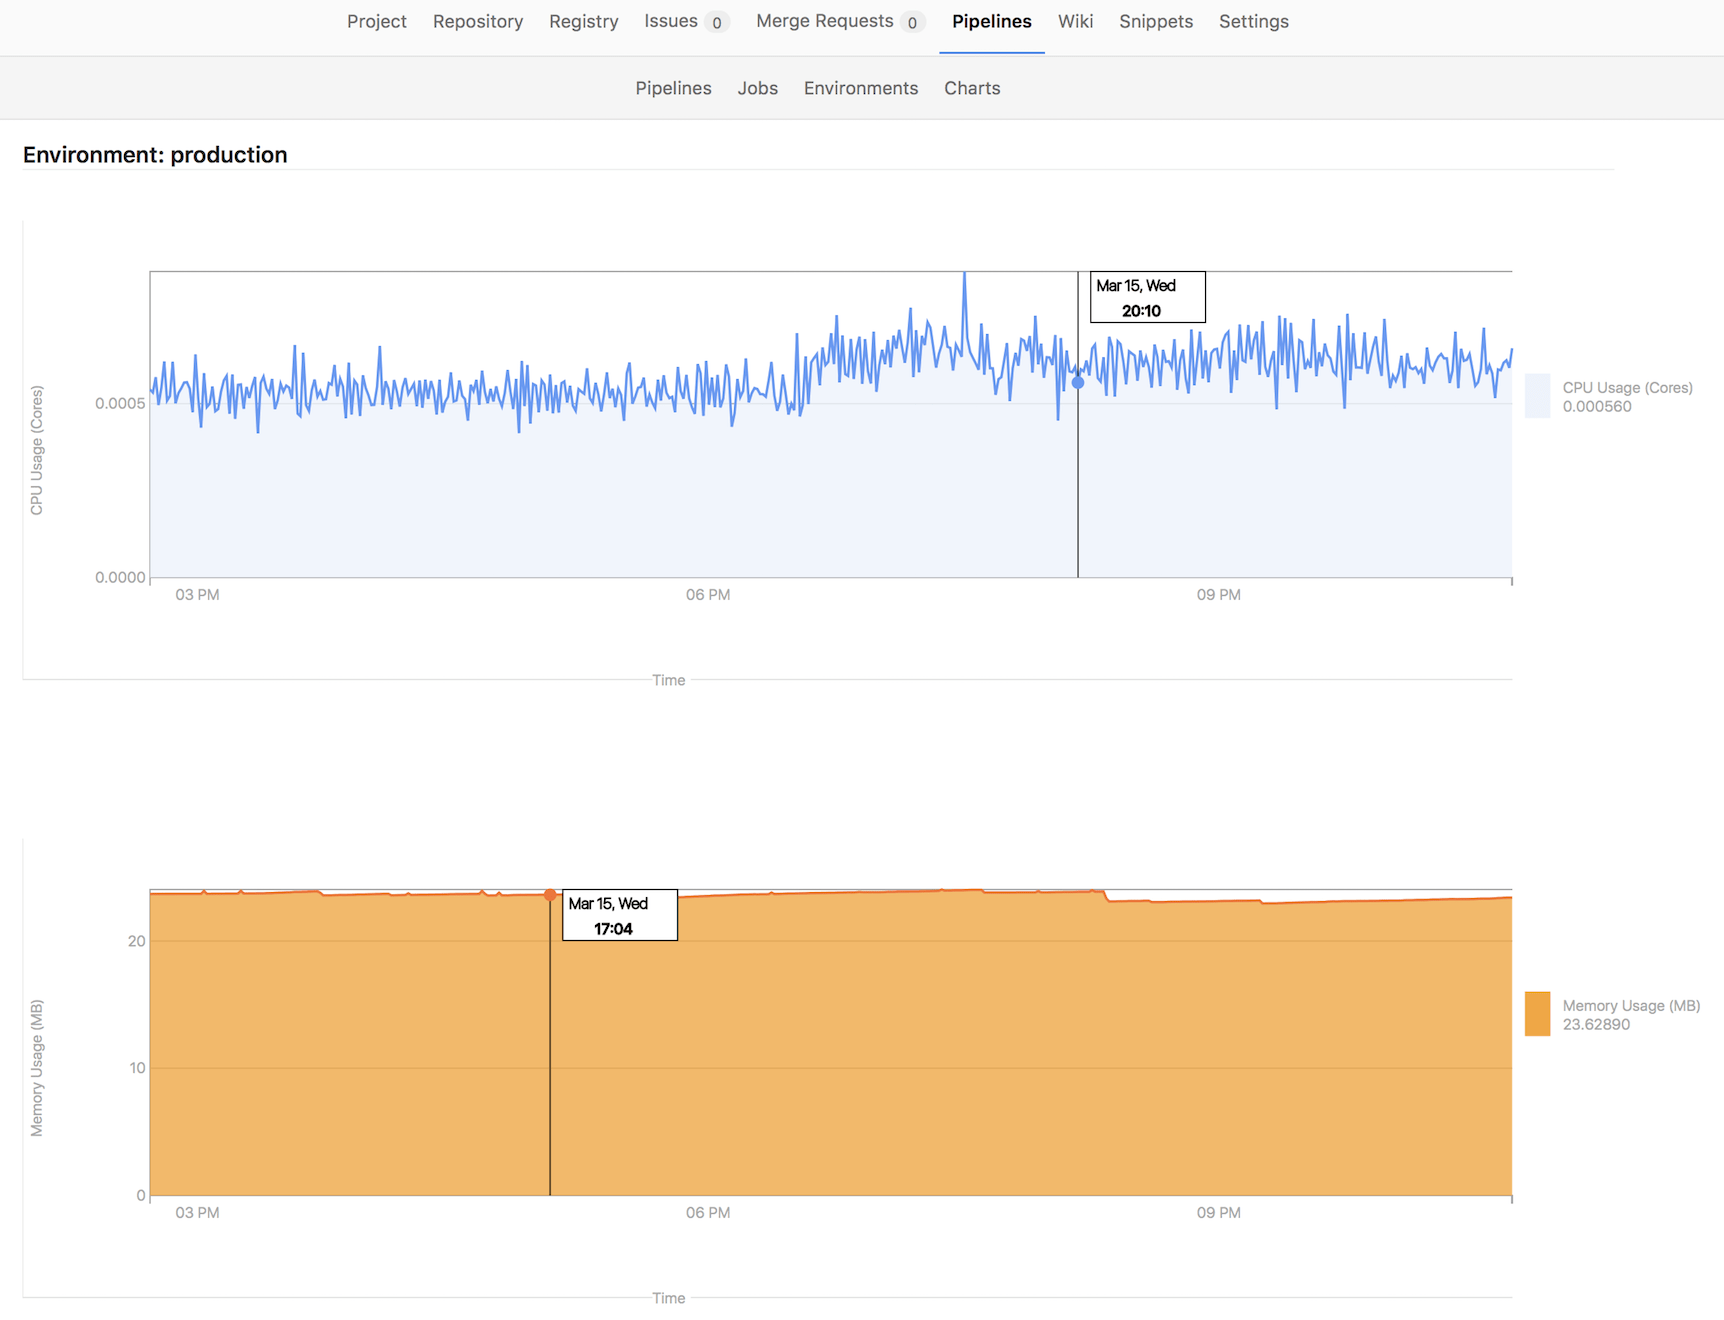 Environment monitoring with Prometheus